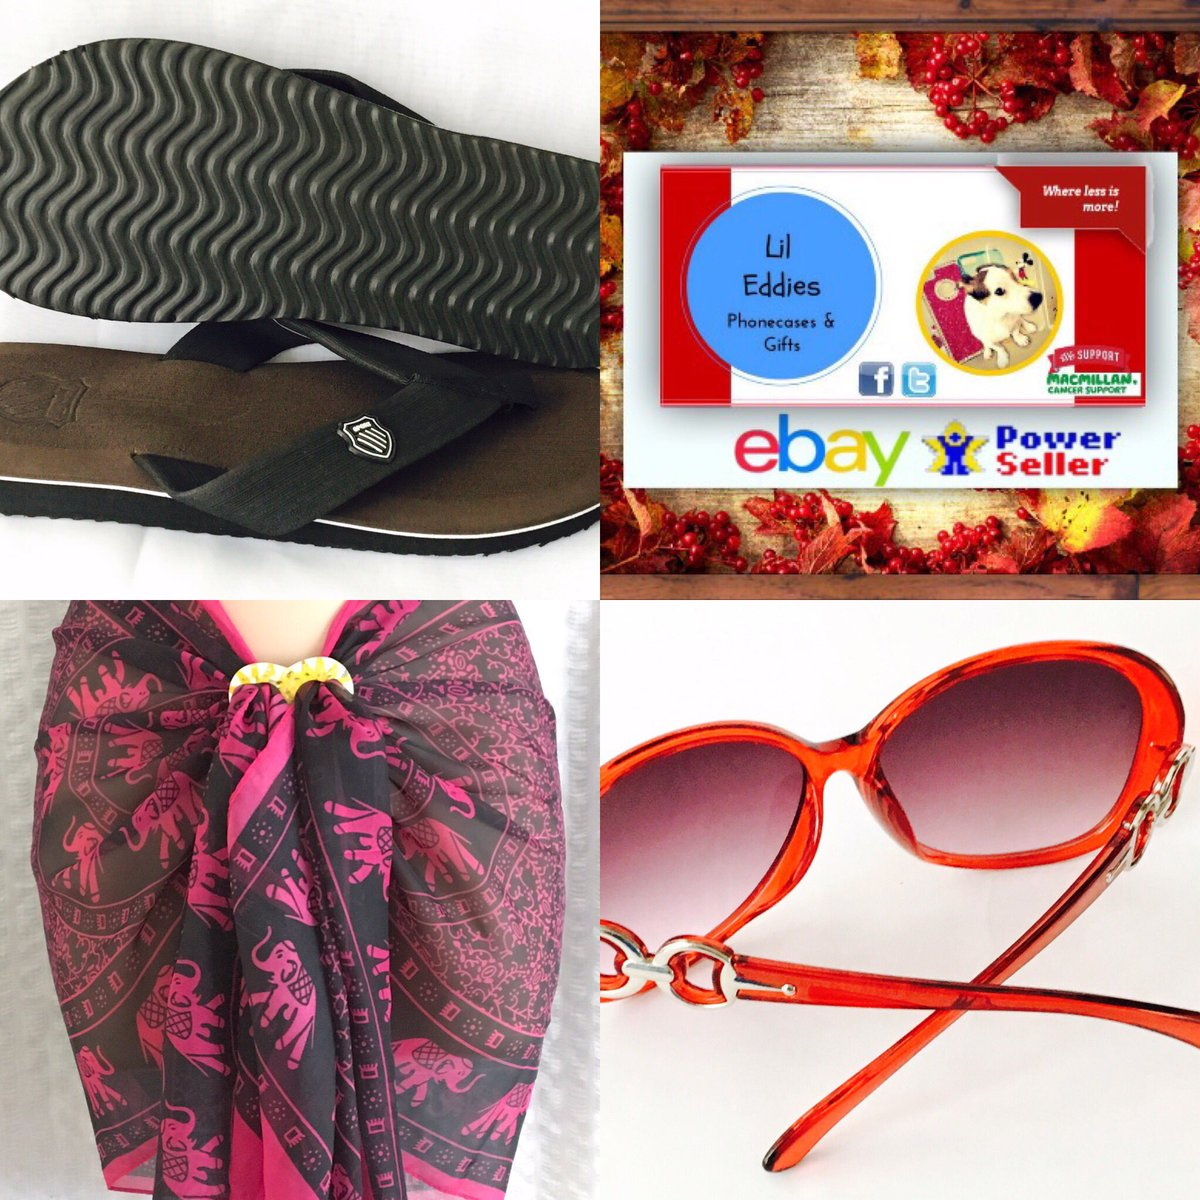 @LilEddies have #Summer stock on #SALE click our link 4 #BARGAINS    http:// Stores.shop.ebay.co.uk/lil-Eddies-Pho necases-and-gifts &nbsp; …   RT FOLLOW @LilEddies 4 a chance 2 WIN a PRIZE<br>http://pic.twitter.com/Kmj8ifw8t5